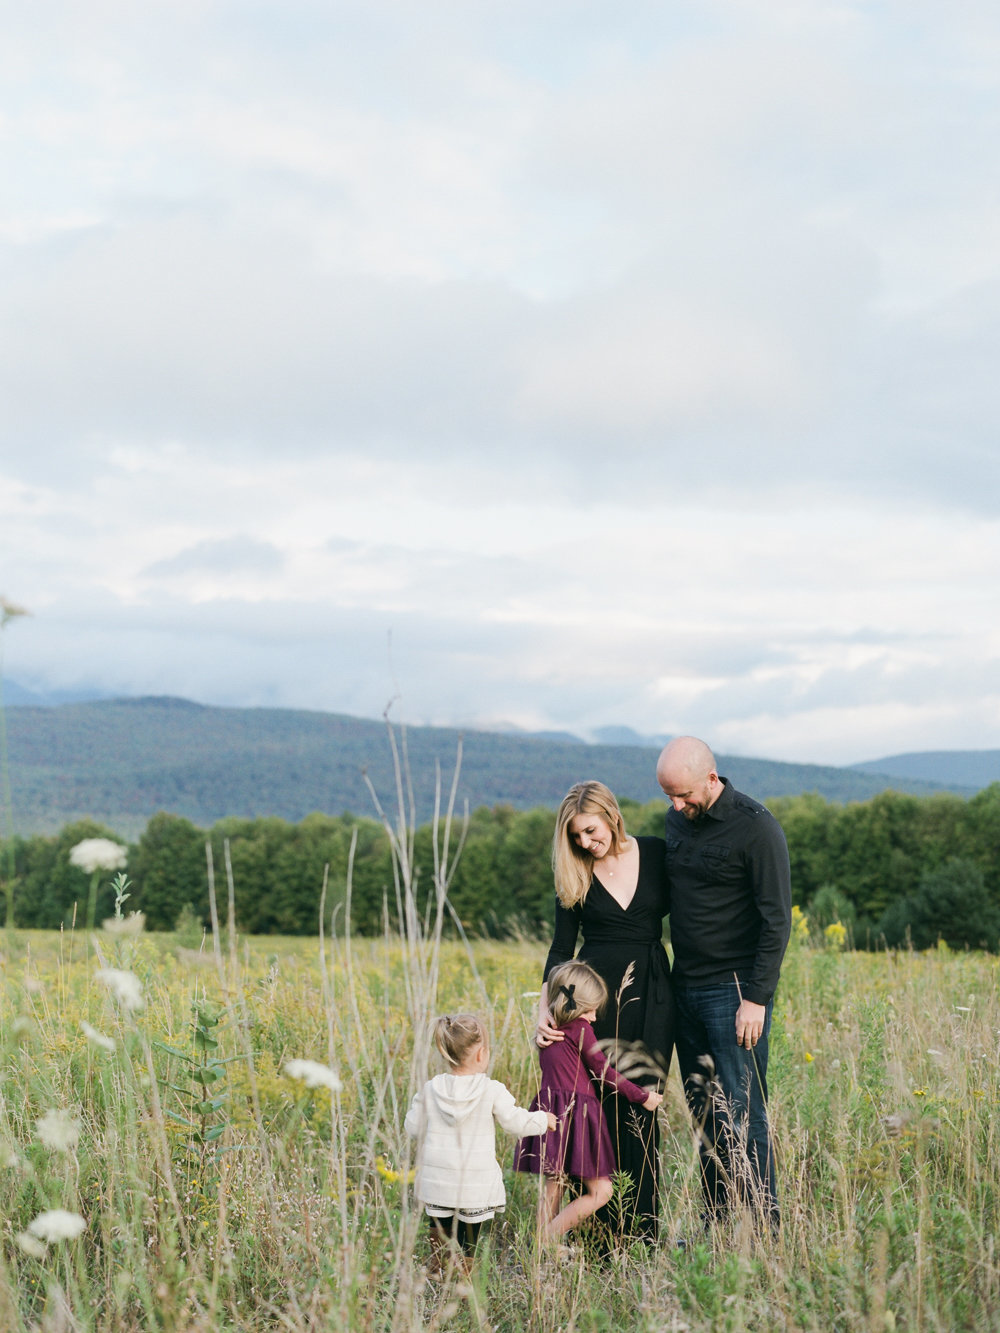 mary-dougherty-family-lifestyle-photographer-adirondack16